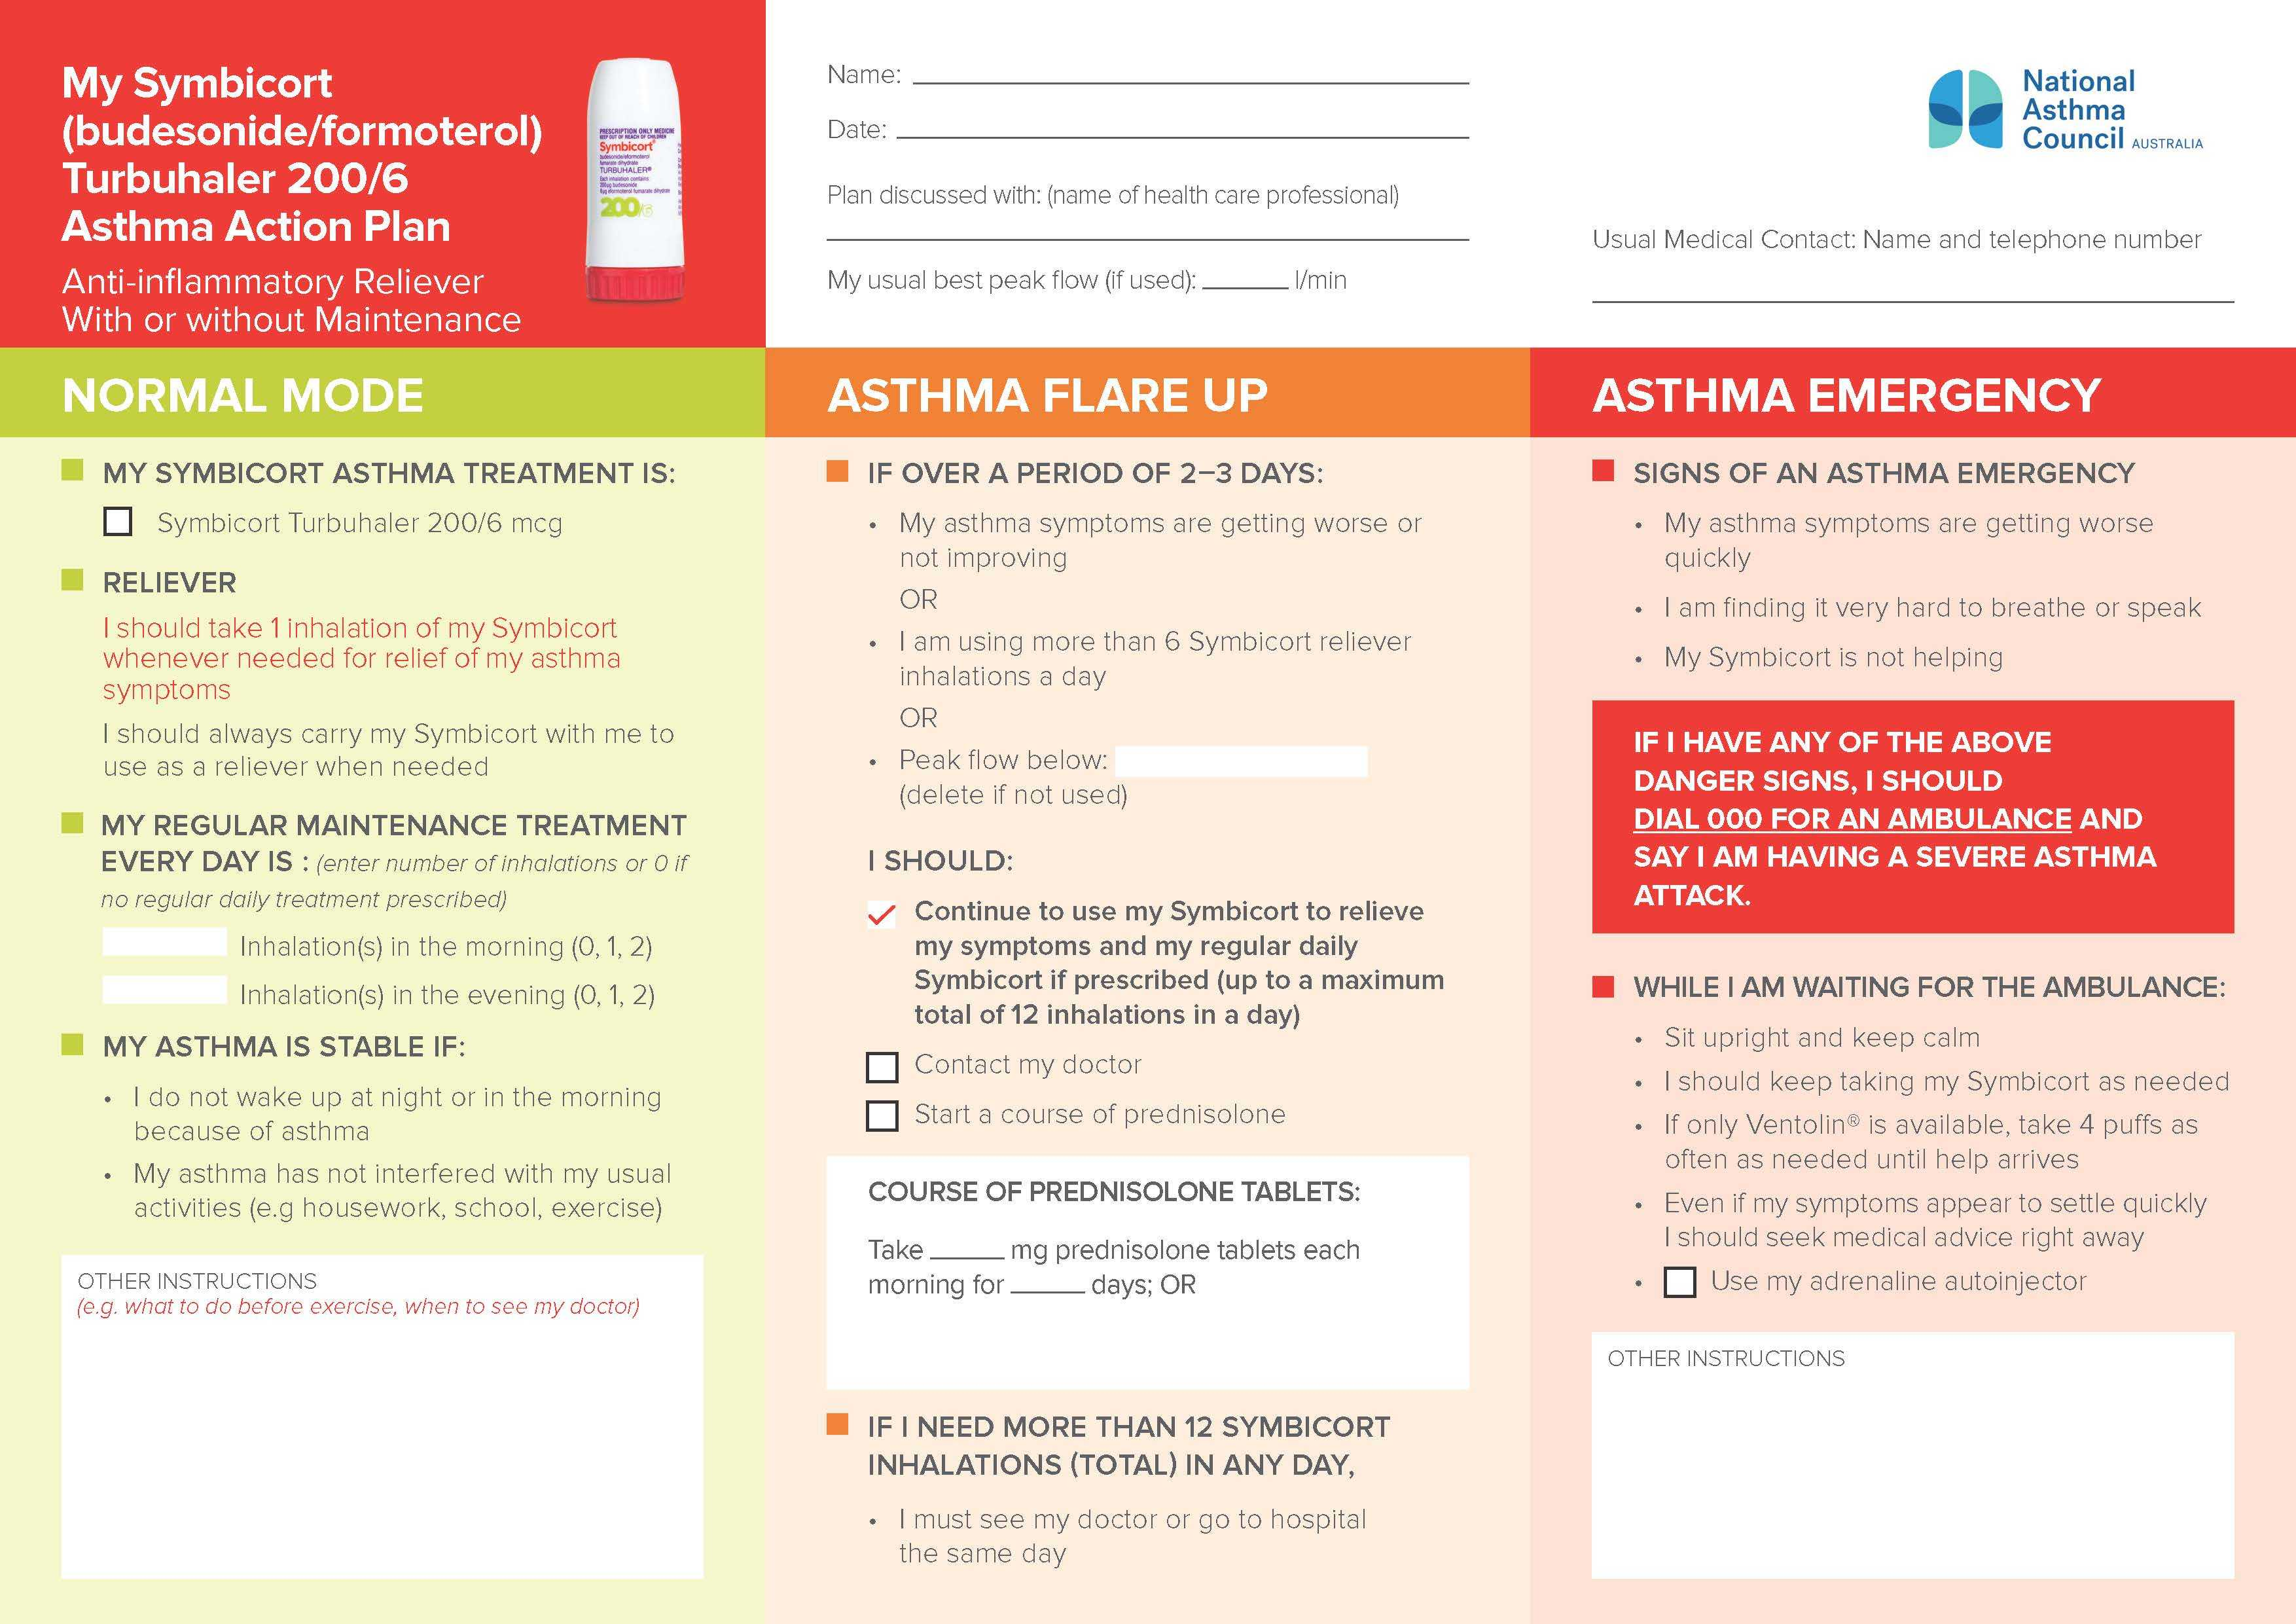 Symbicort_Asthma_Action_Plan_Turbuhaler_01.06.2020_Page_1.jpg#asset:2199